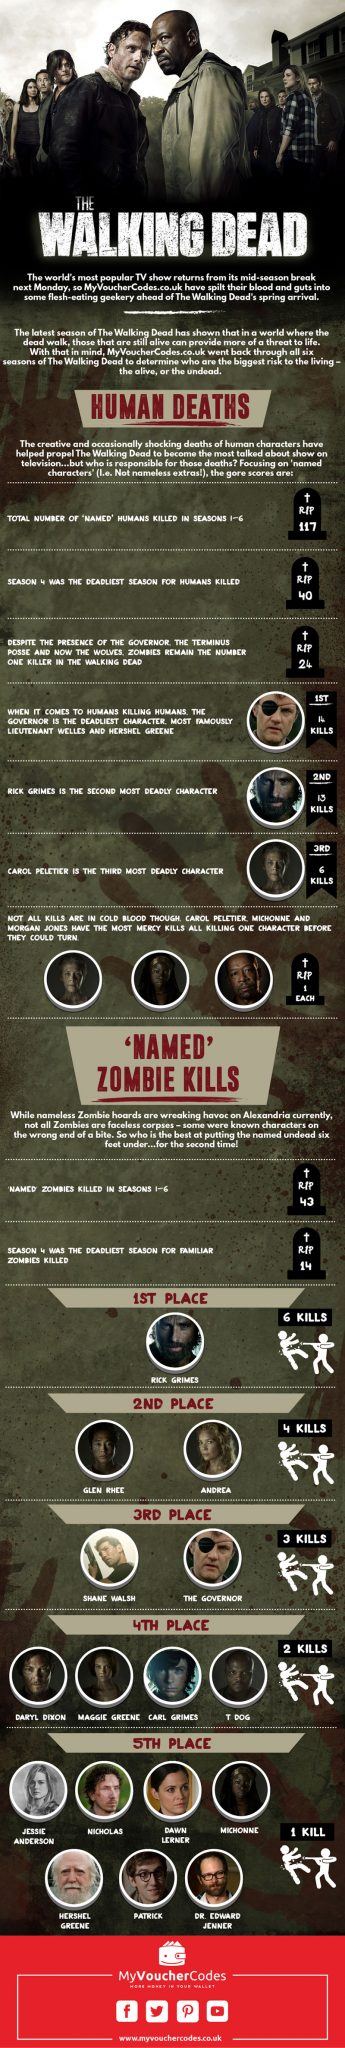 Walking-Dead-Infographic-01